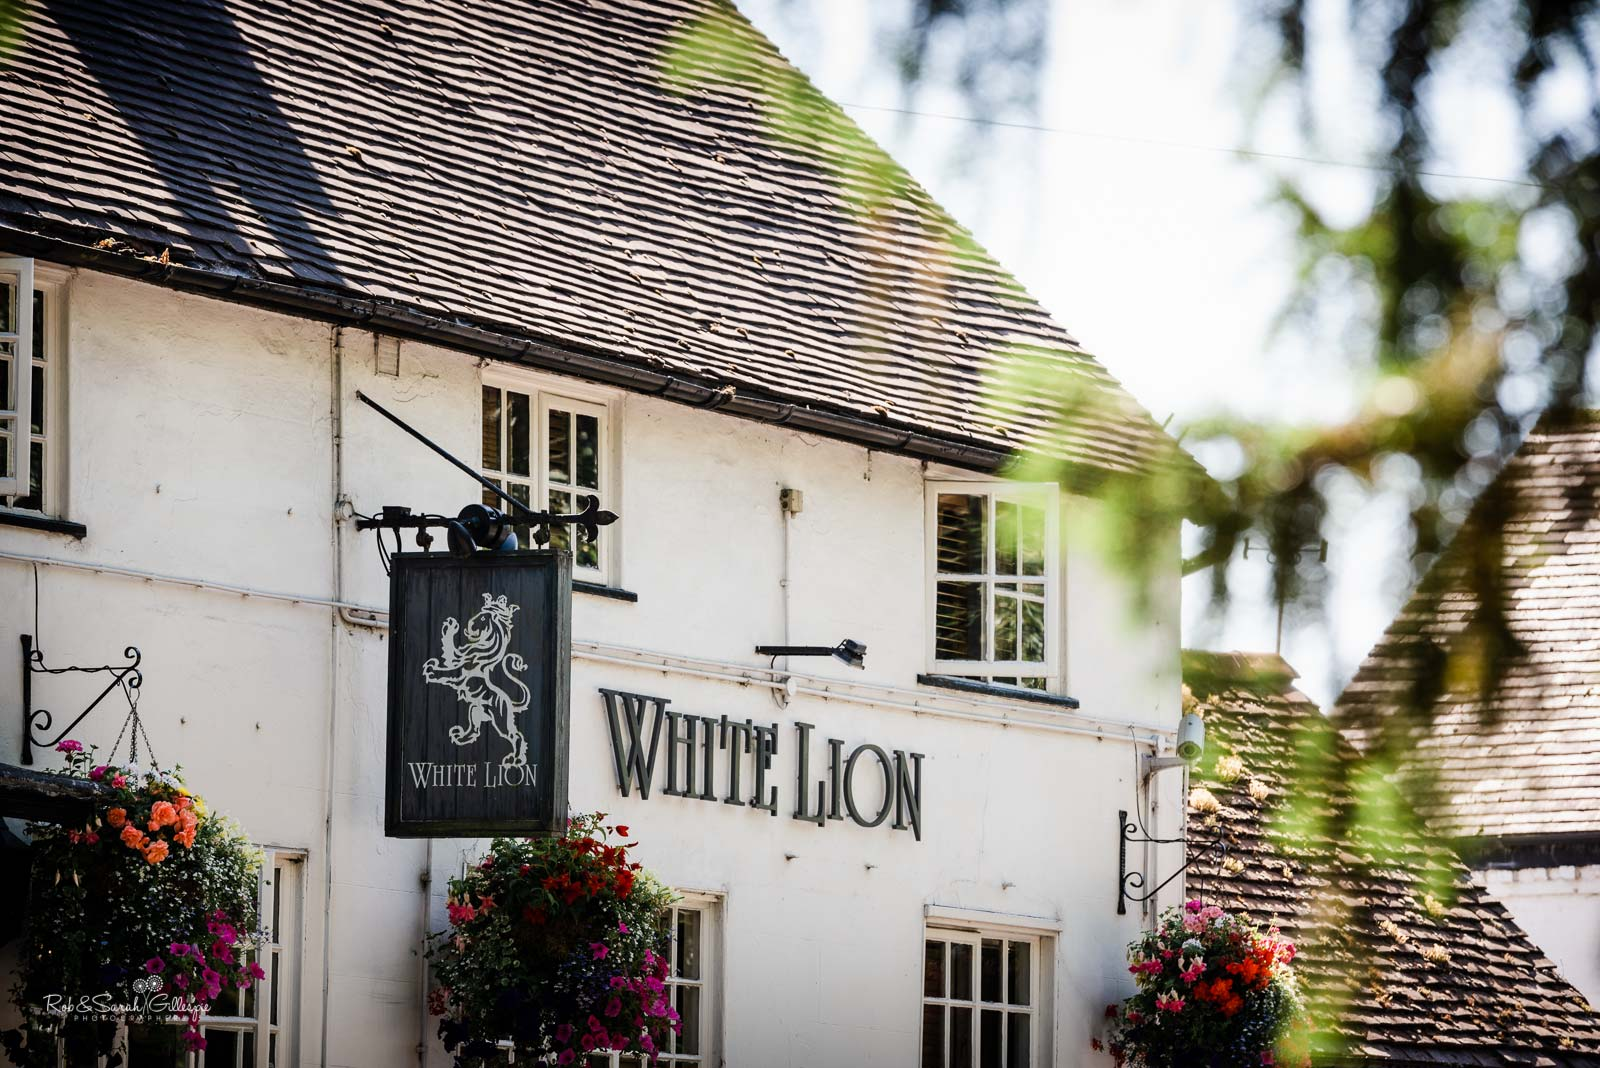 White Lion pub in Hampton in Arden